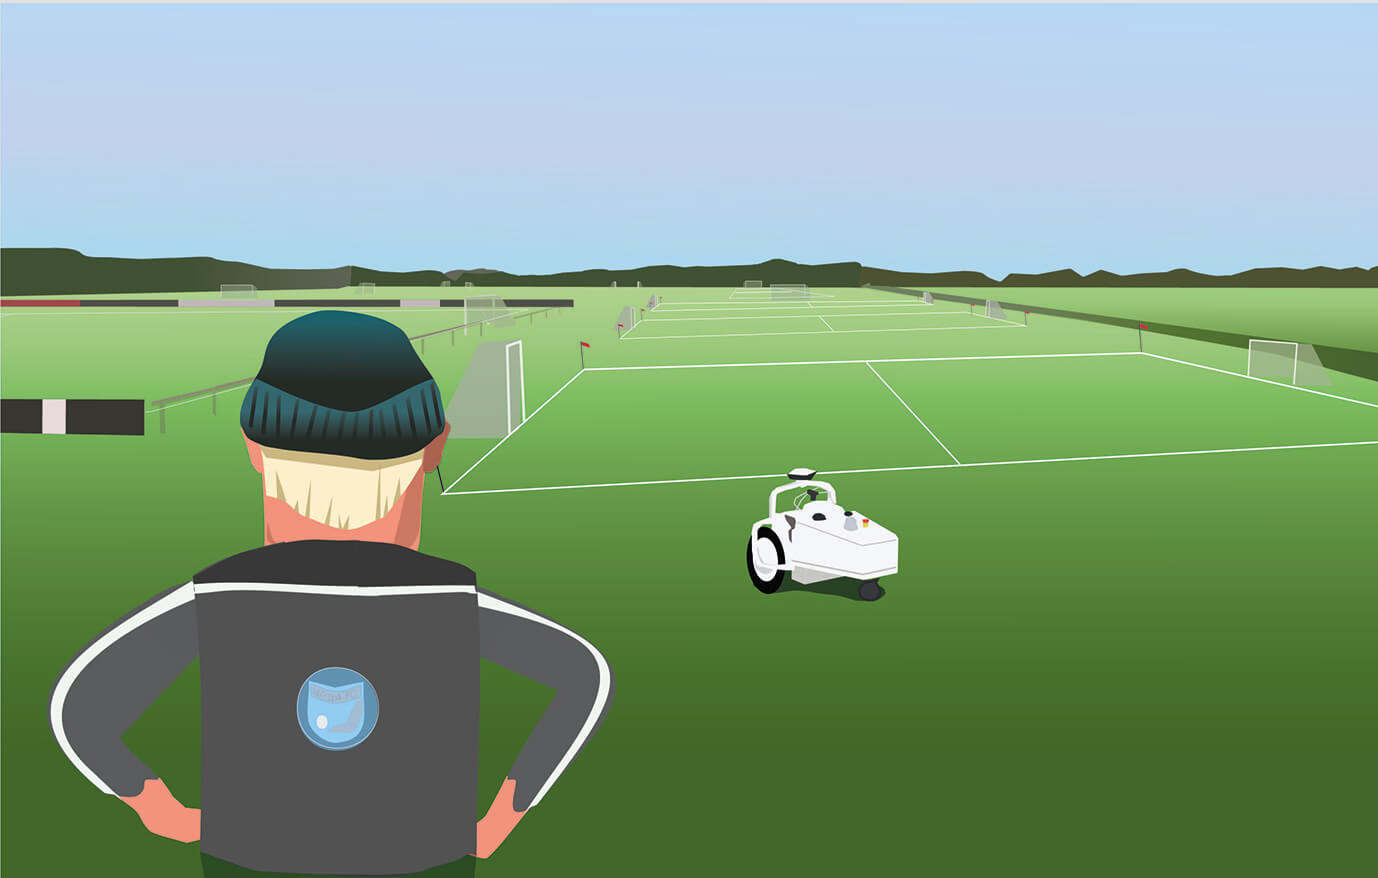 A sports line marking robot can free up time for groundsmen